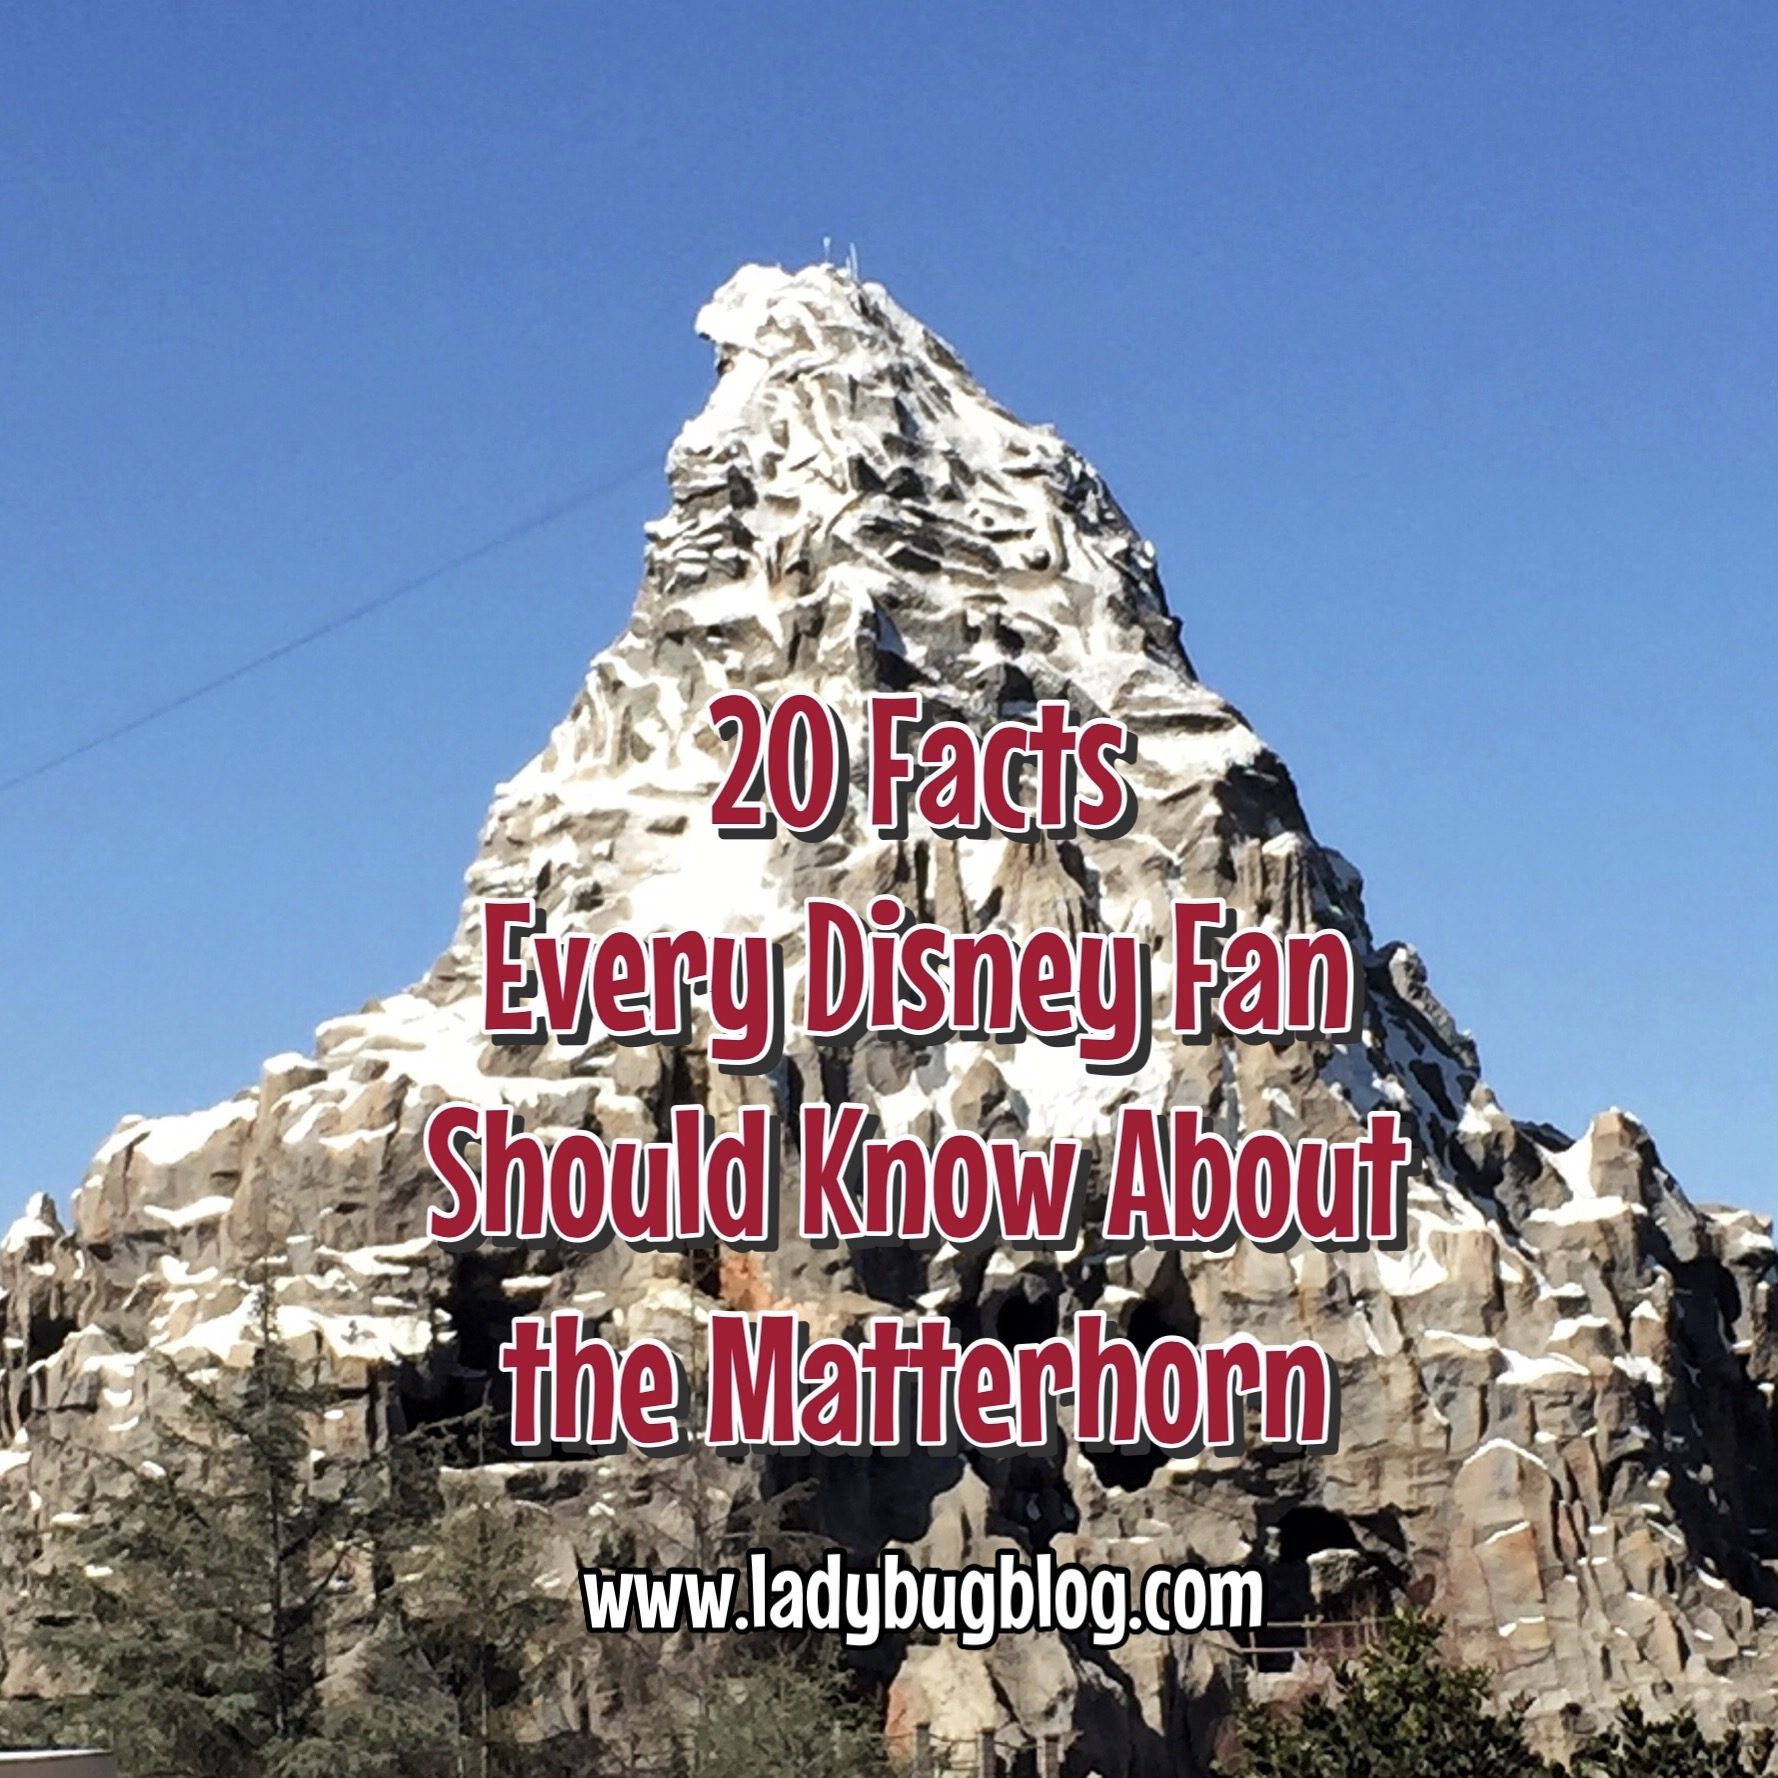 20 Facts Every Disney Fan Should Know About The Matterhorn Ladybug